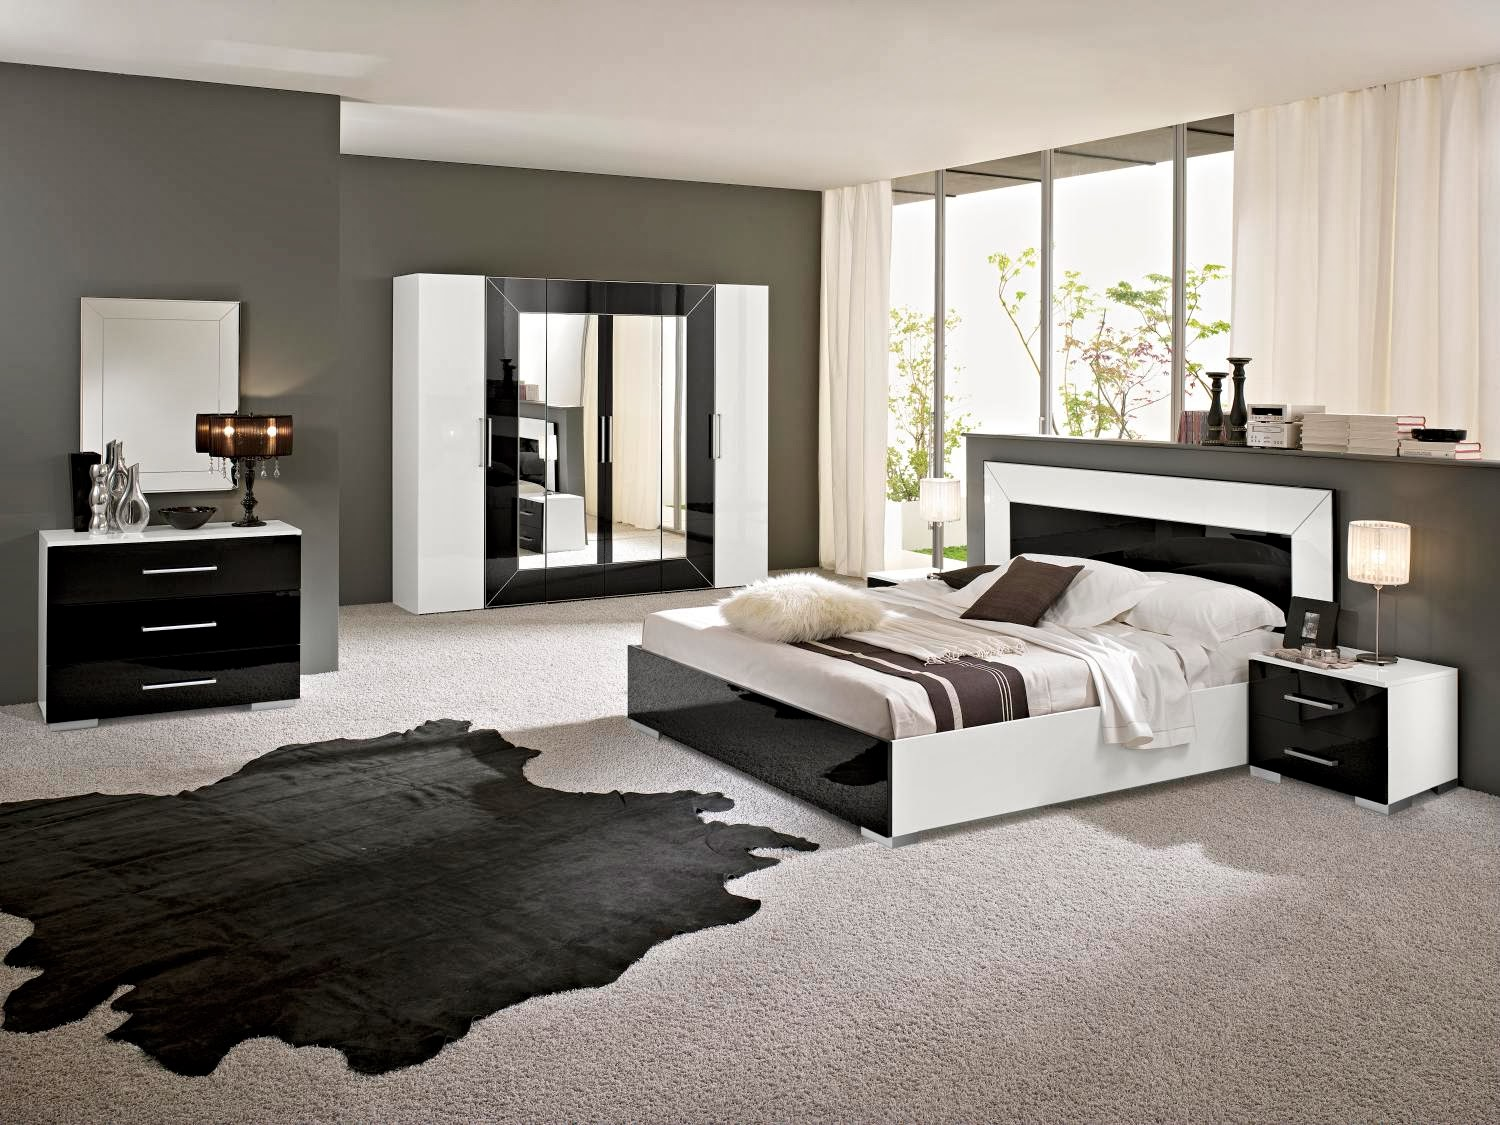 decorer une chambre en ligne. Black Bedroom Furniture Sets. Home Design Ideas